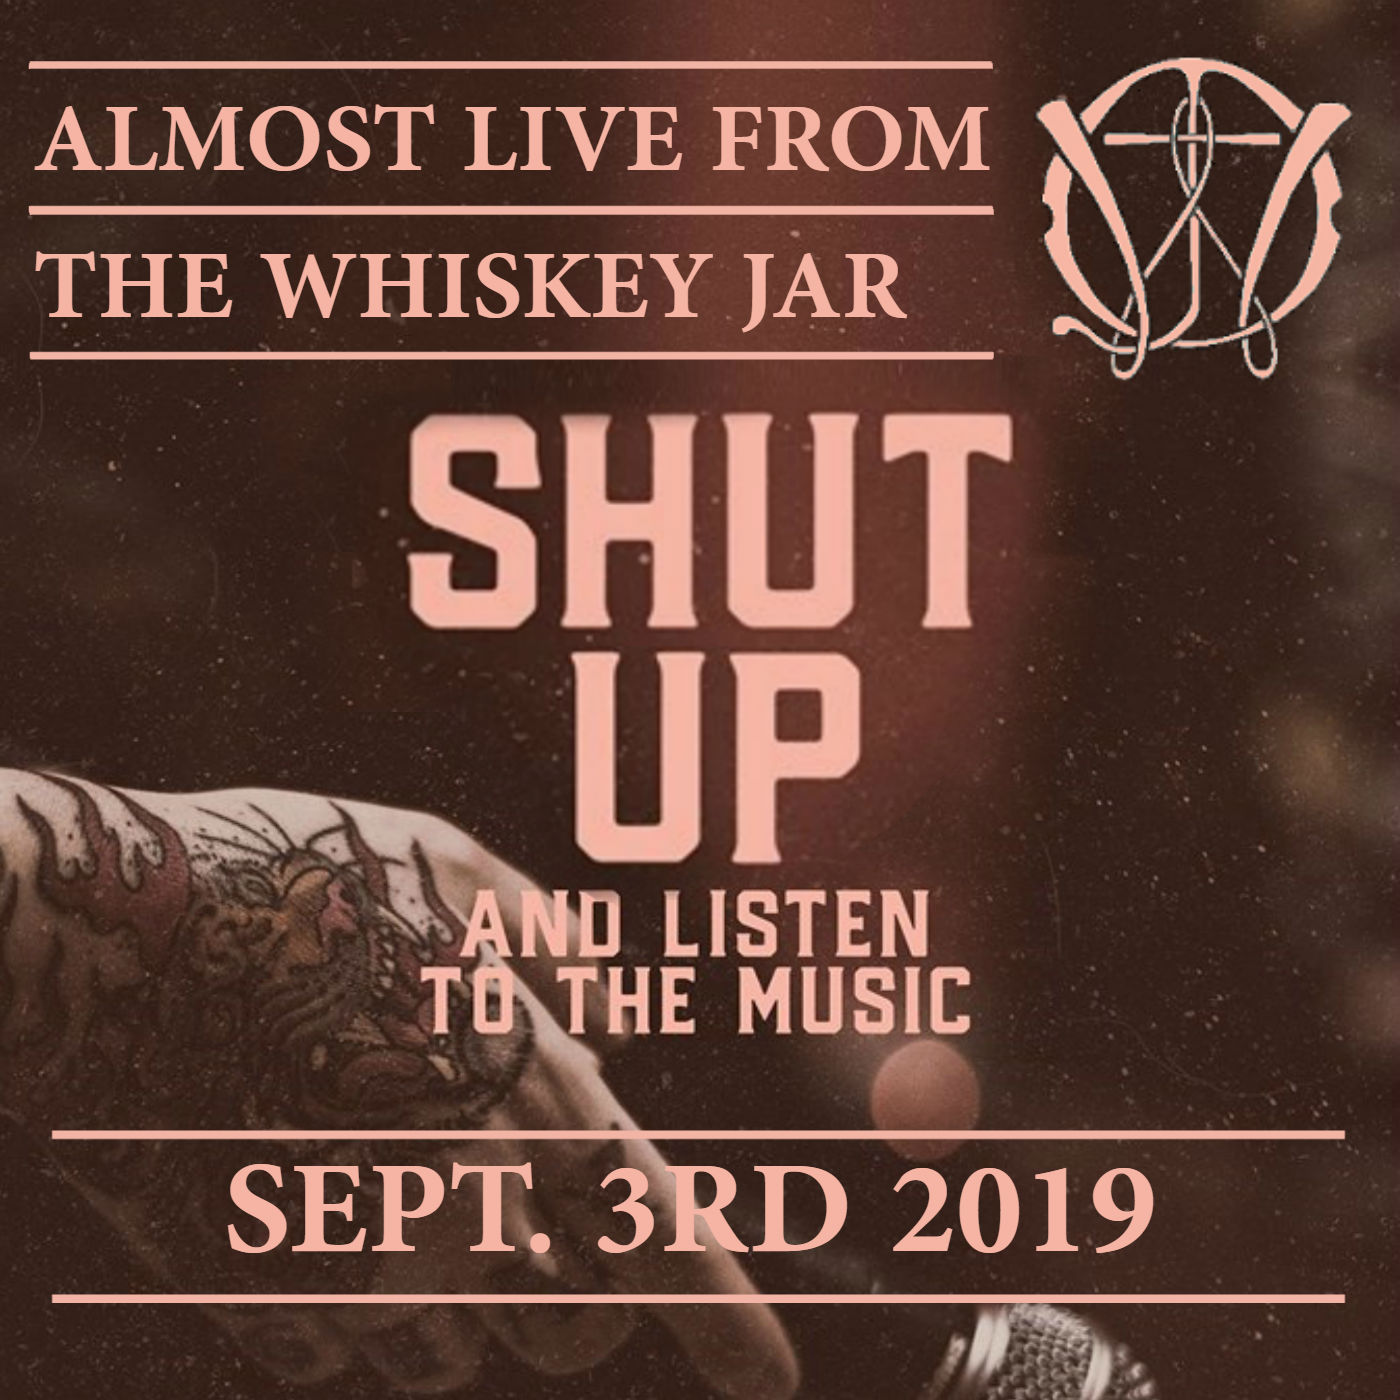 Almost Live from the Whiskey Jar - September 3rd 2019 [Episode 43] - Glorious Republic Radio